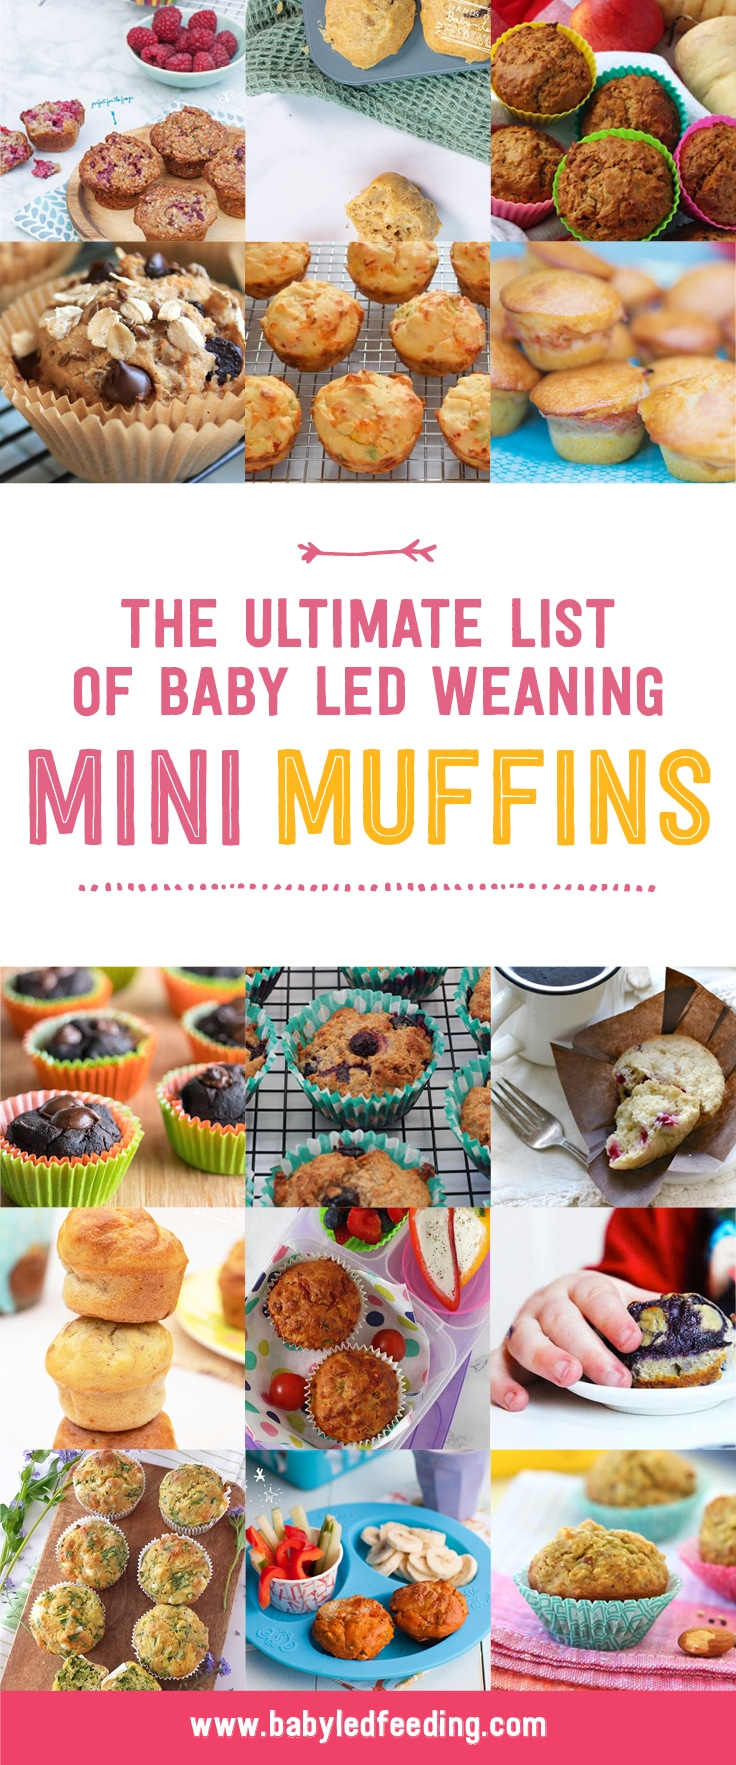 Ultimate list of Mini Muffins! 25+ Healthy muffin recipe for babies and toddlers. Muffins are the ultimate freezer friendly veggie hiding finger foods for picky eaters and busy families! #minimuffins #muffinrecipe #babyledweaning #fingerfood #makeahead